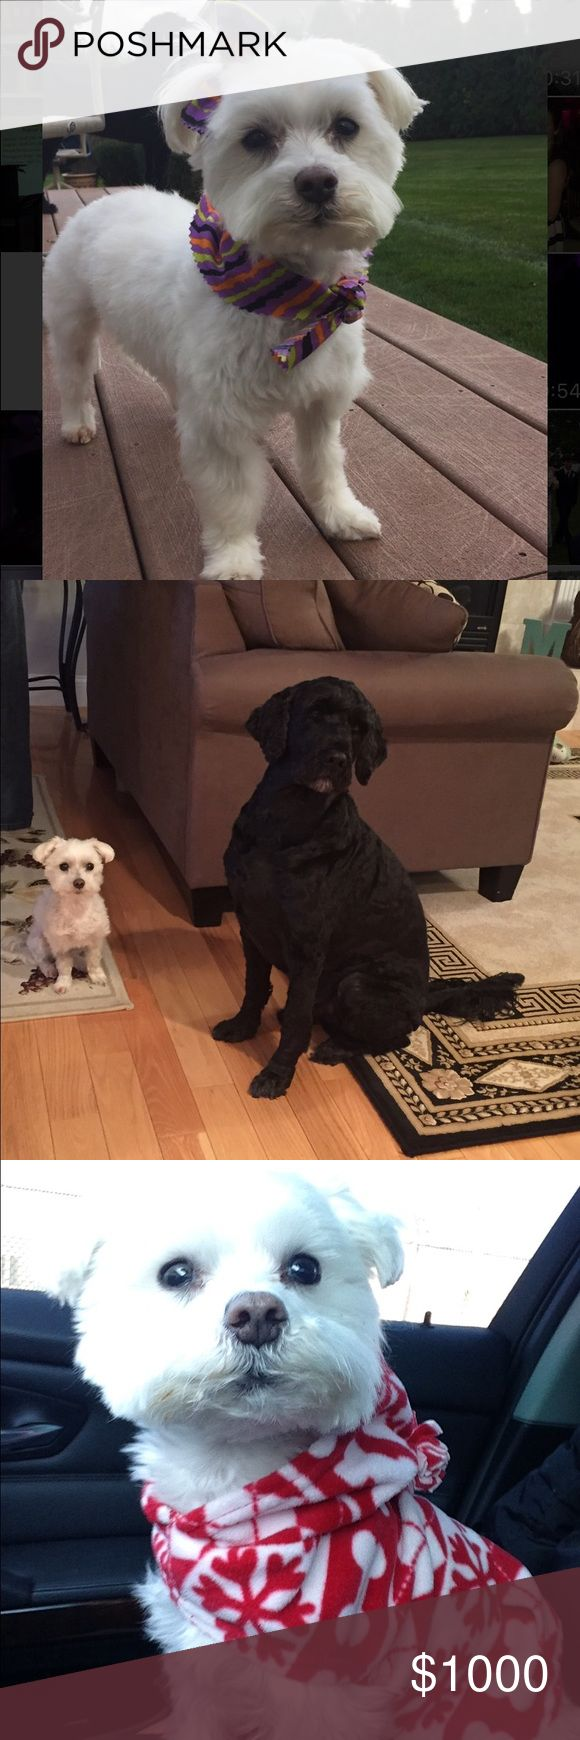 Meet my pups! 🐾🐾 Both of my dogs are hypoallergenic (meaning they have hair-not fur) no shedding!  They truly brighten everyday and are like my children! Pants